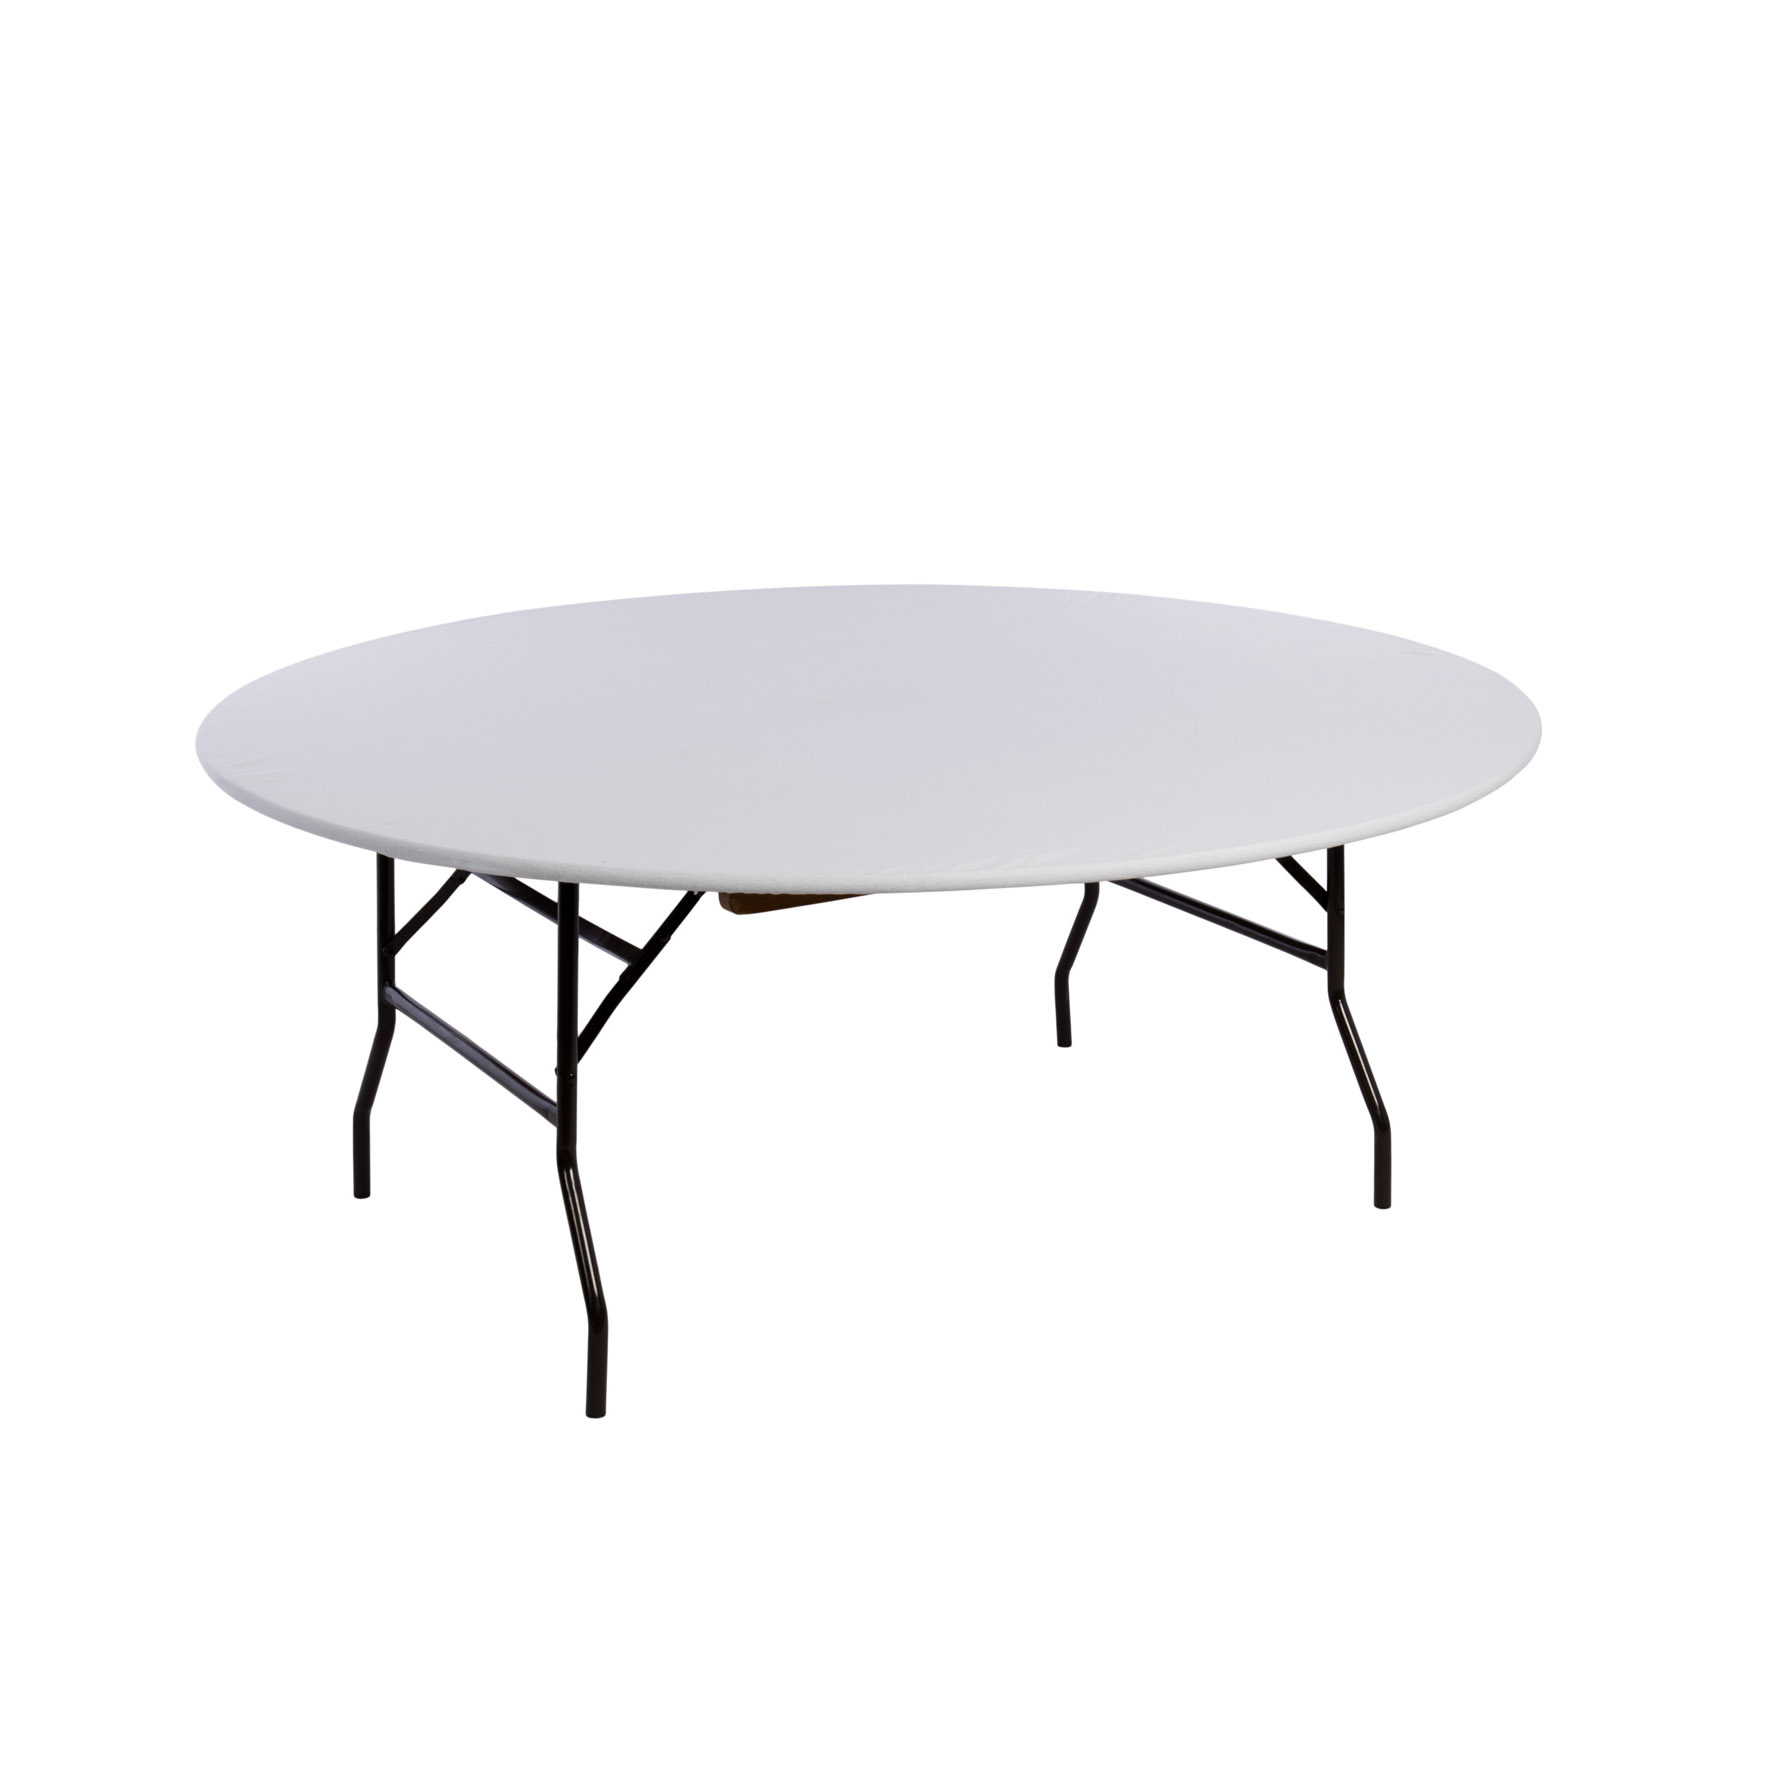 Molleton Pour Table Ronde 180 Abc Location